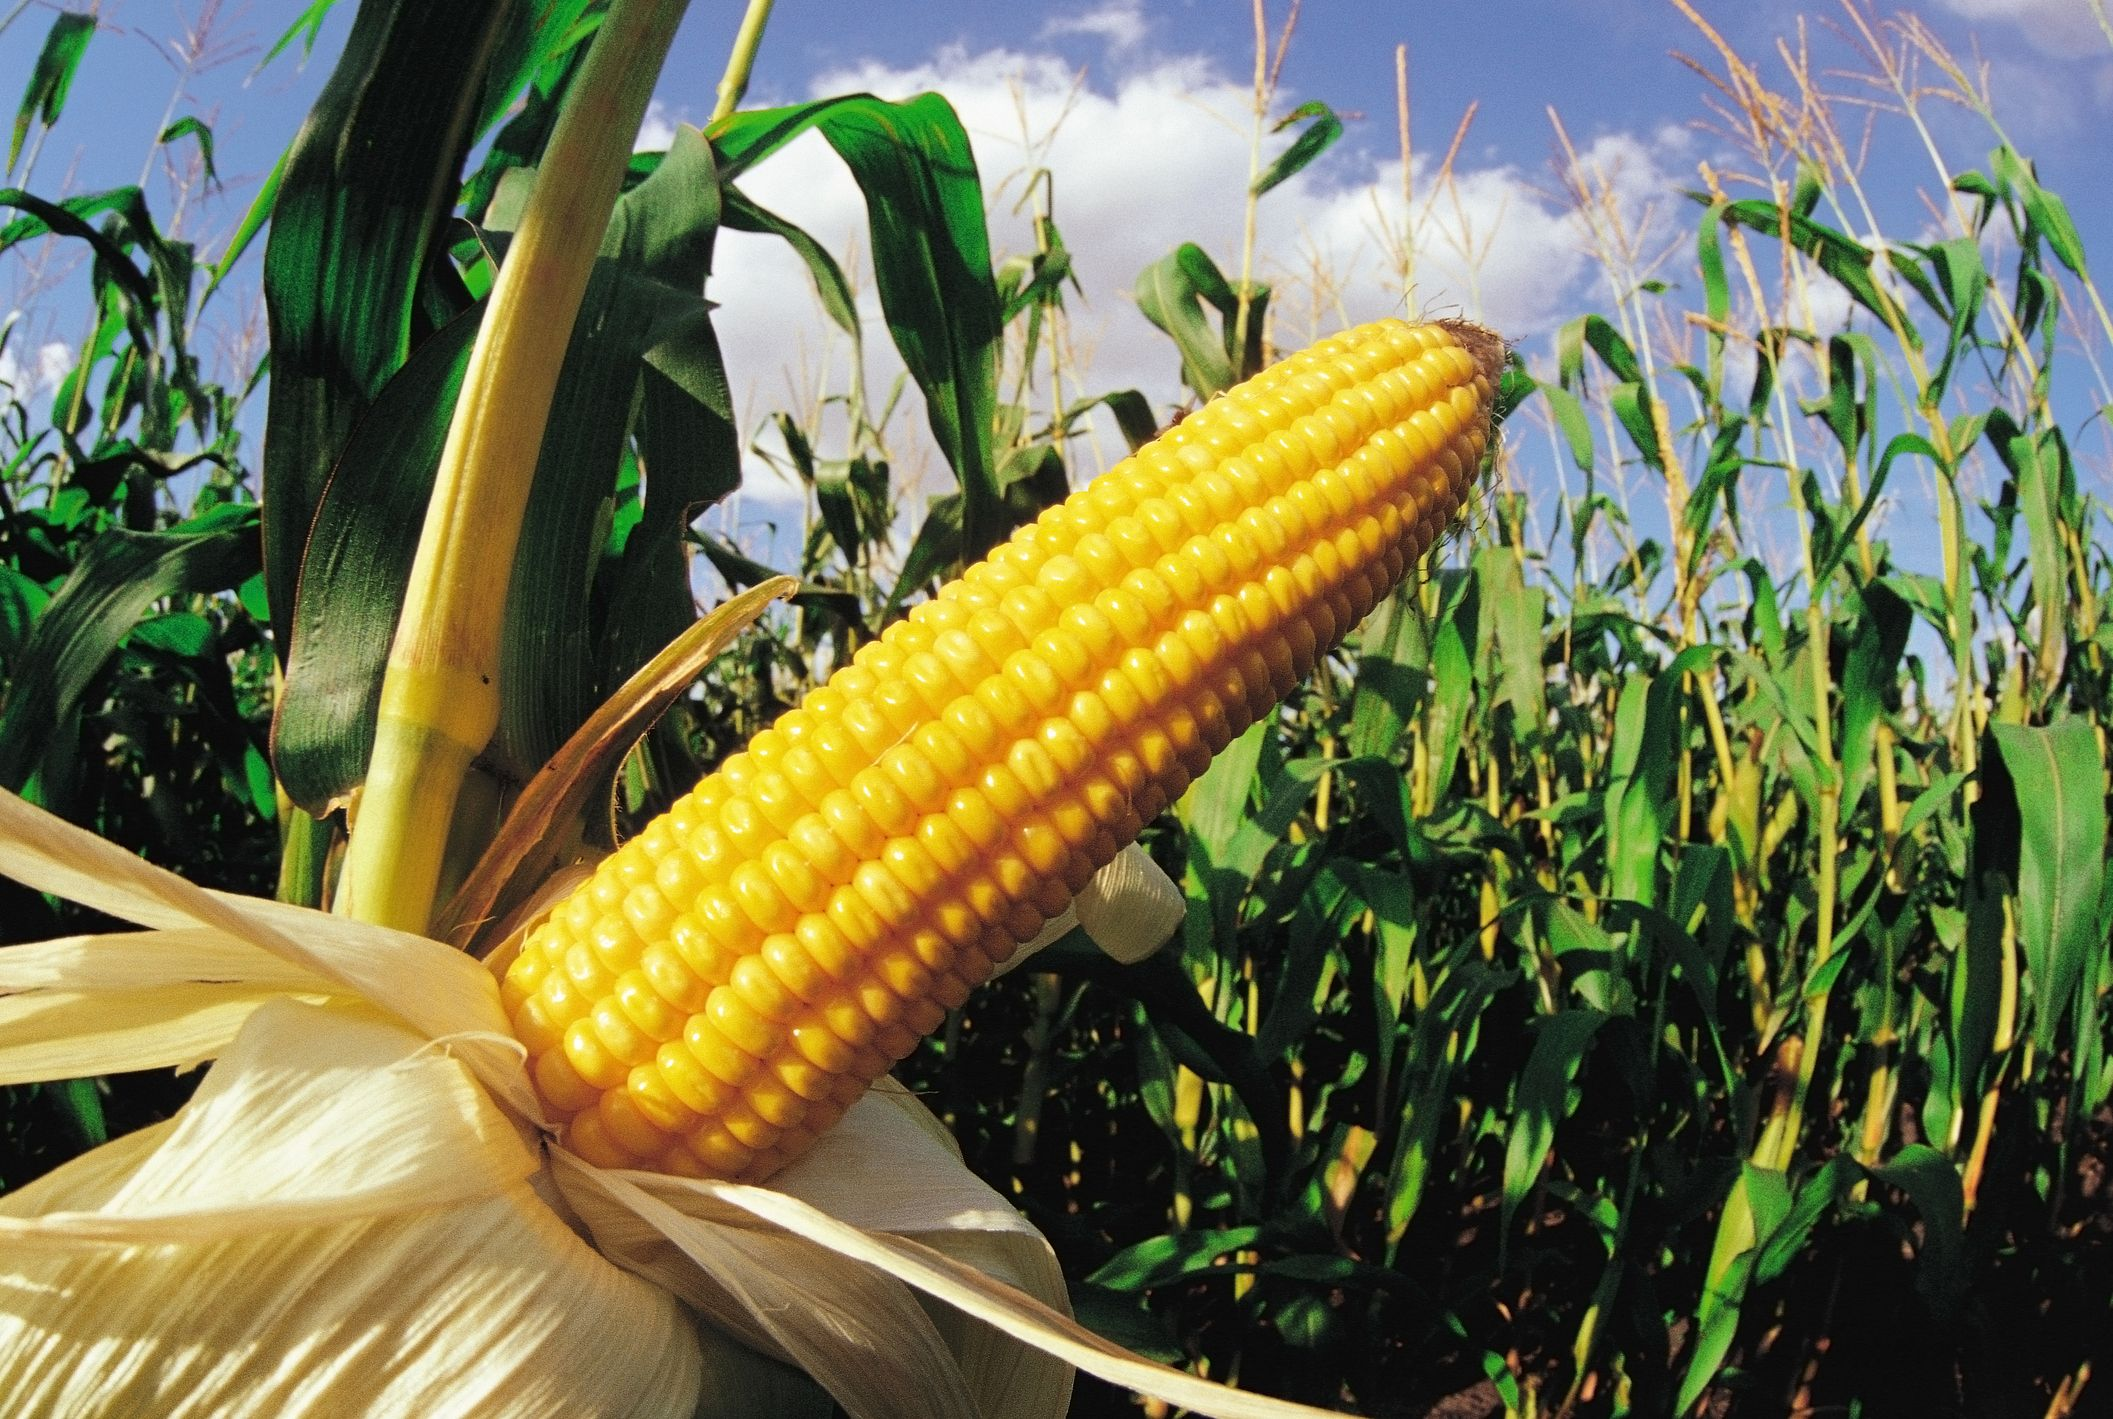 The Beginner's Guide To Growing Corn